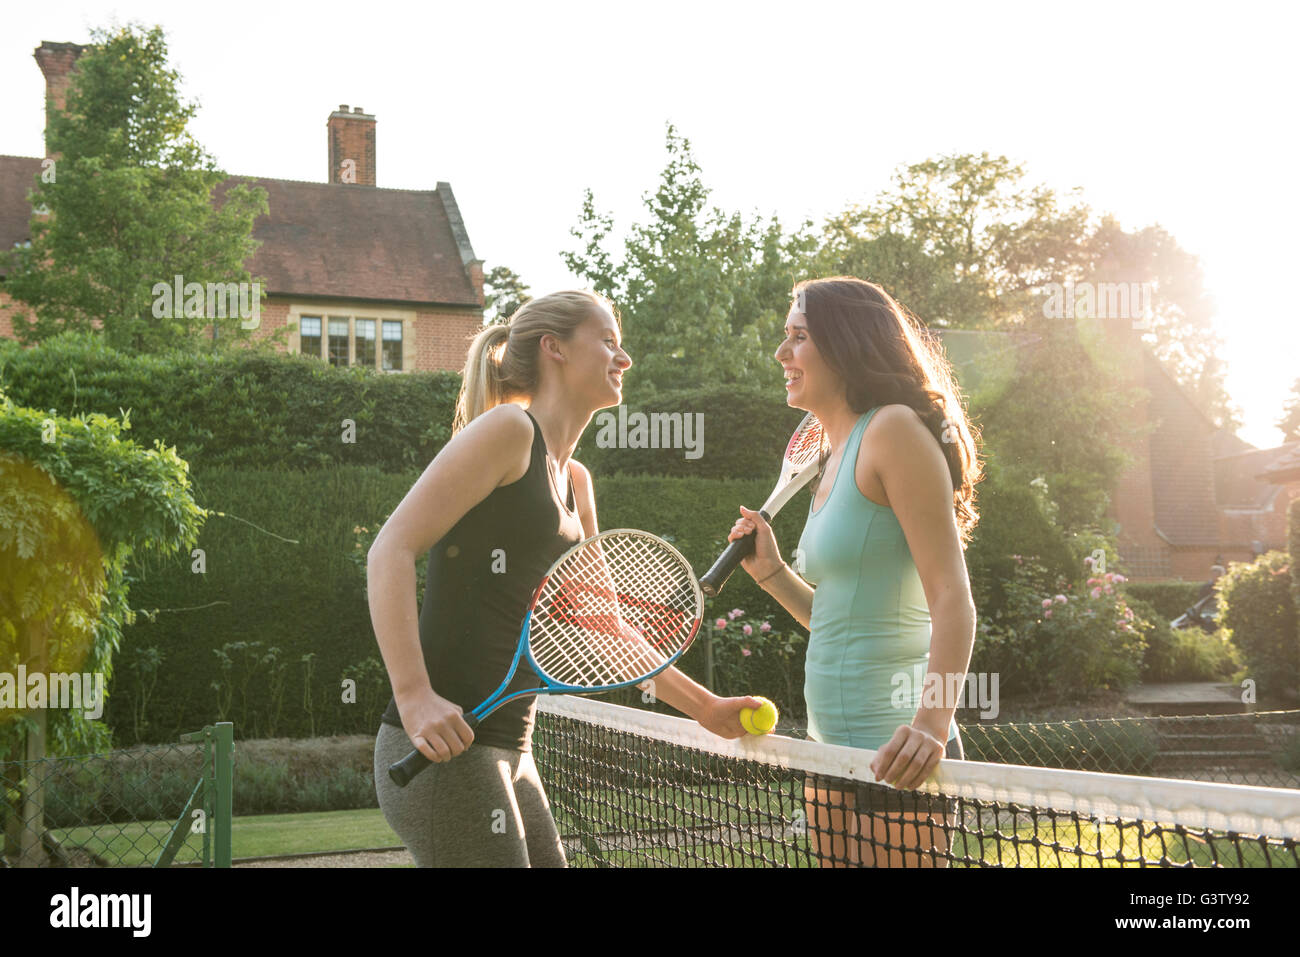 Two young women sharing a joke on a tennis court in the evening sunshine. - Stock Image